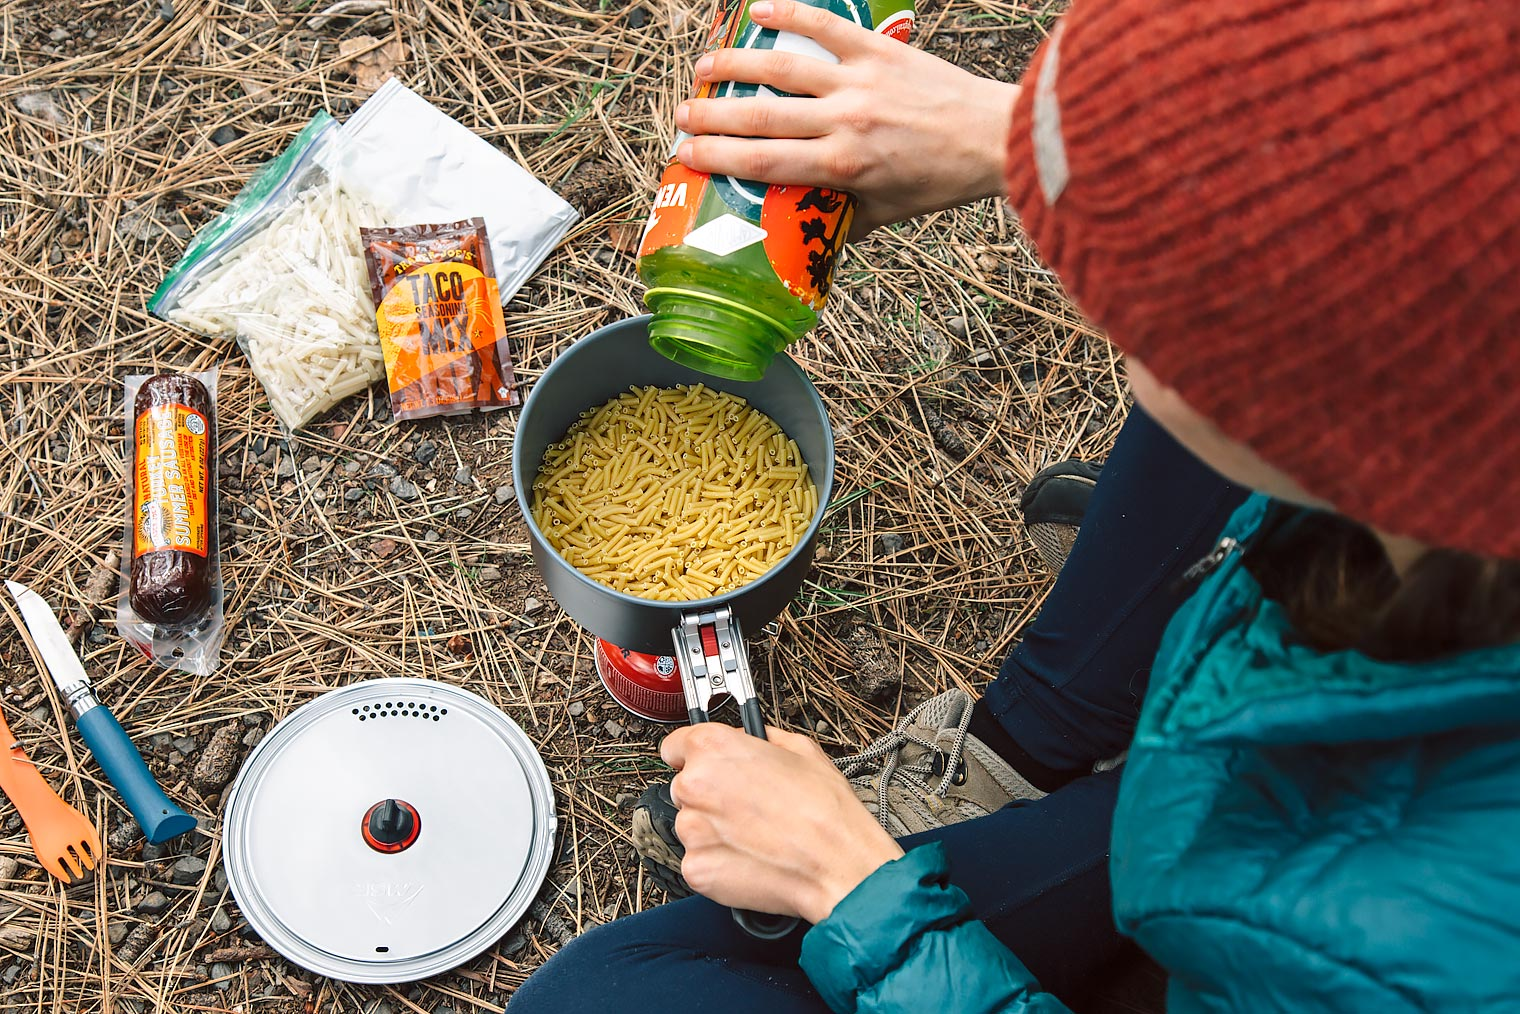 20 Simple Backpacking Meal Ideas Using Items From Trader Joes